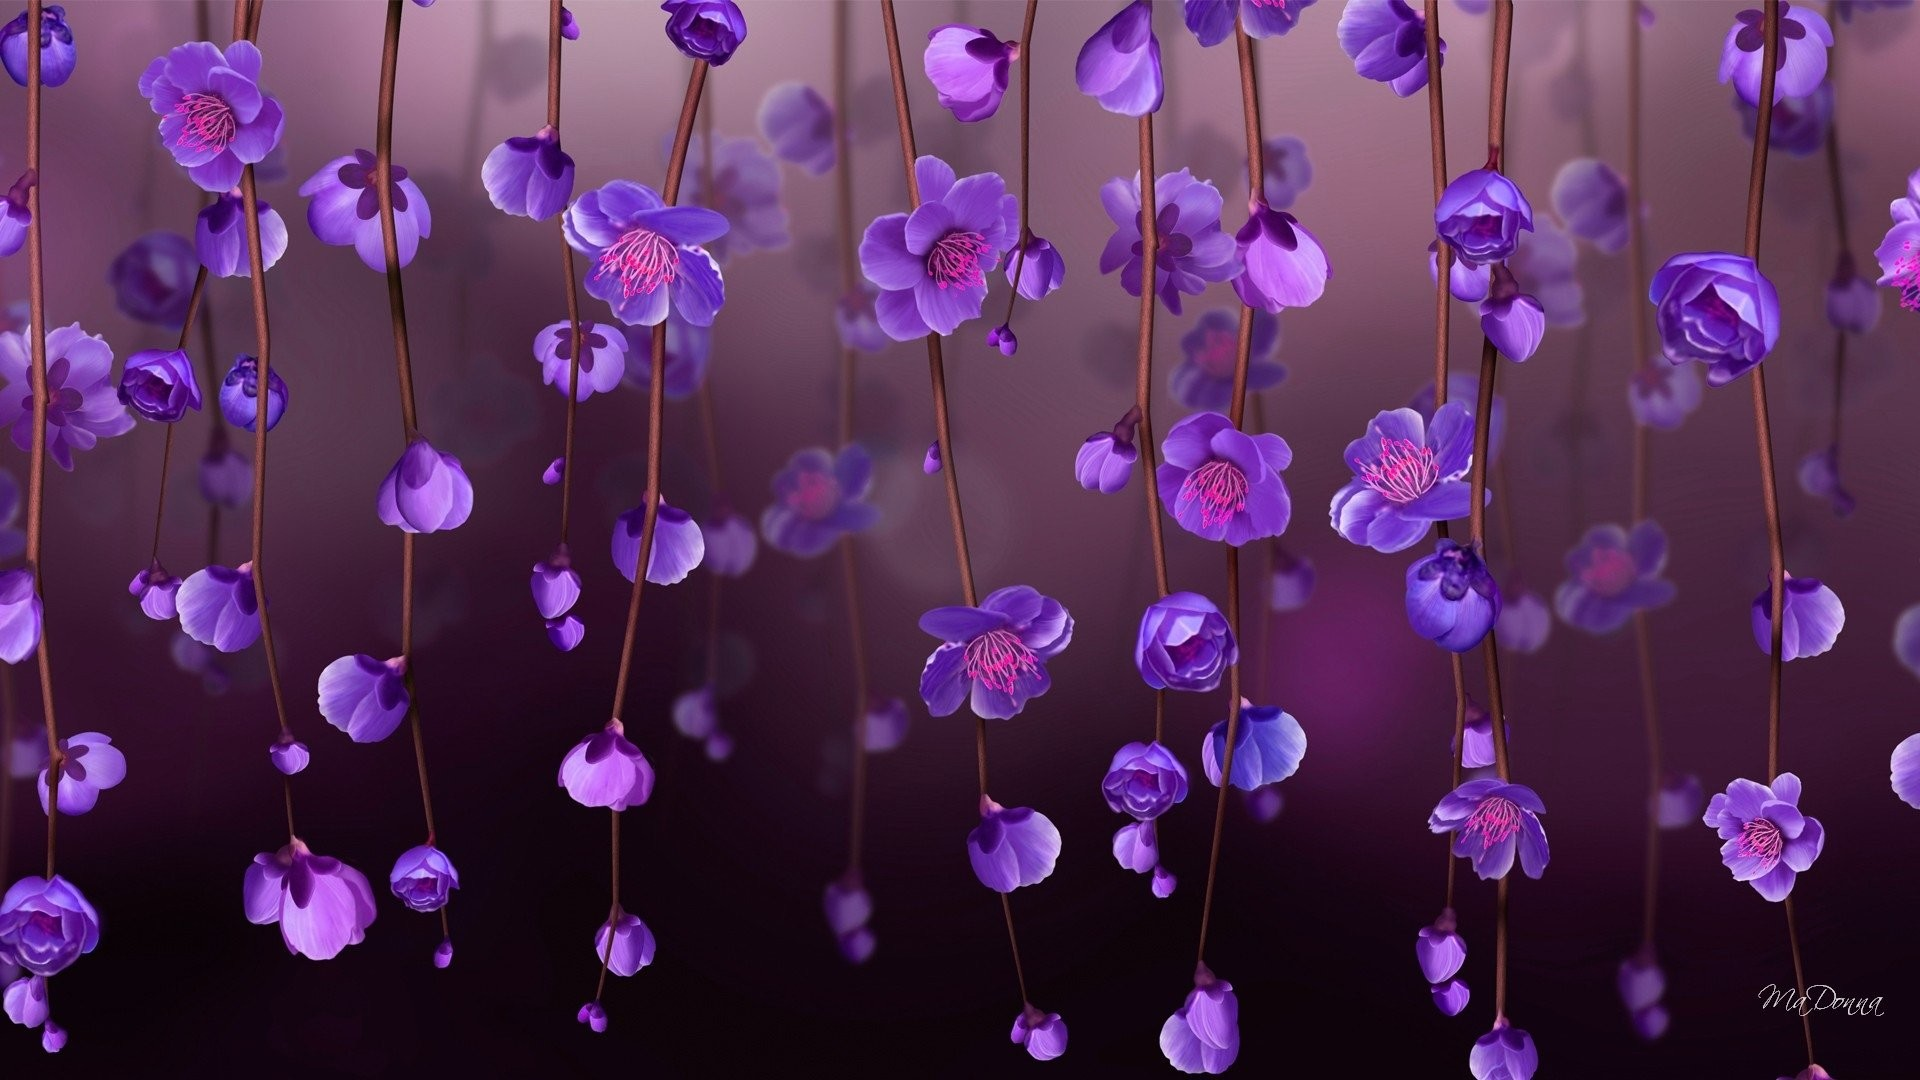 purple flowers wallpapers (76+ images)